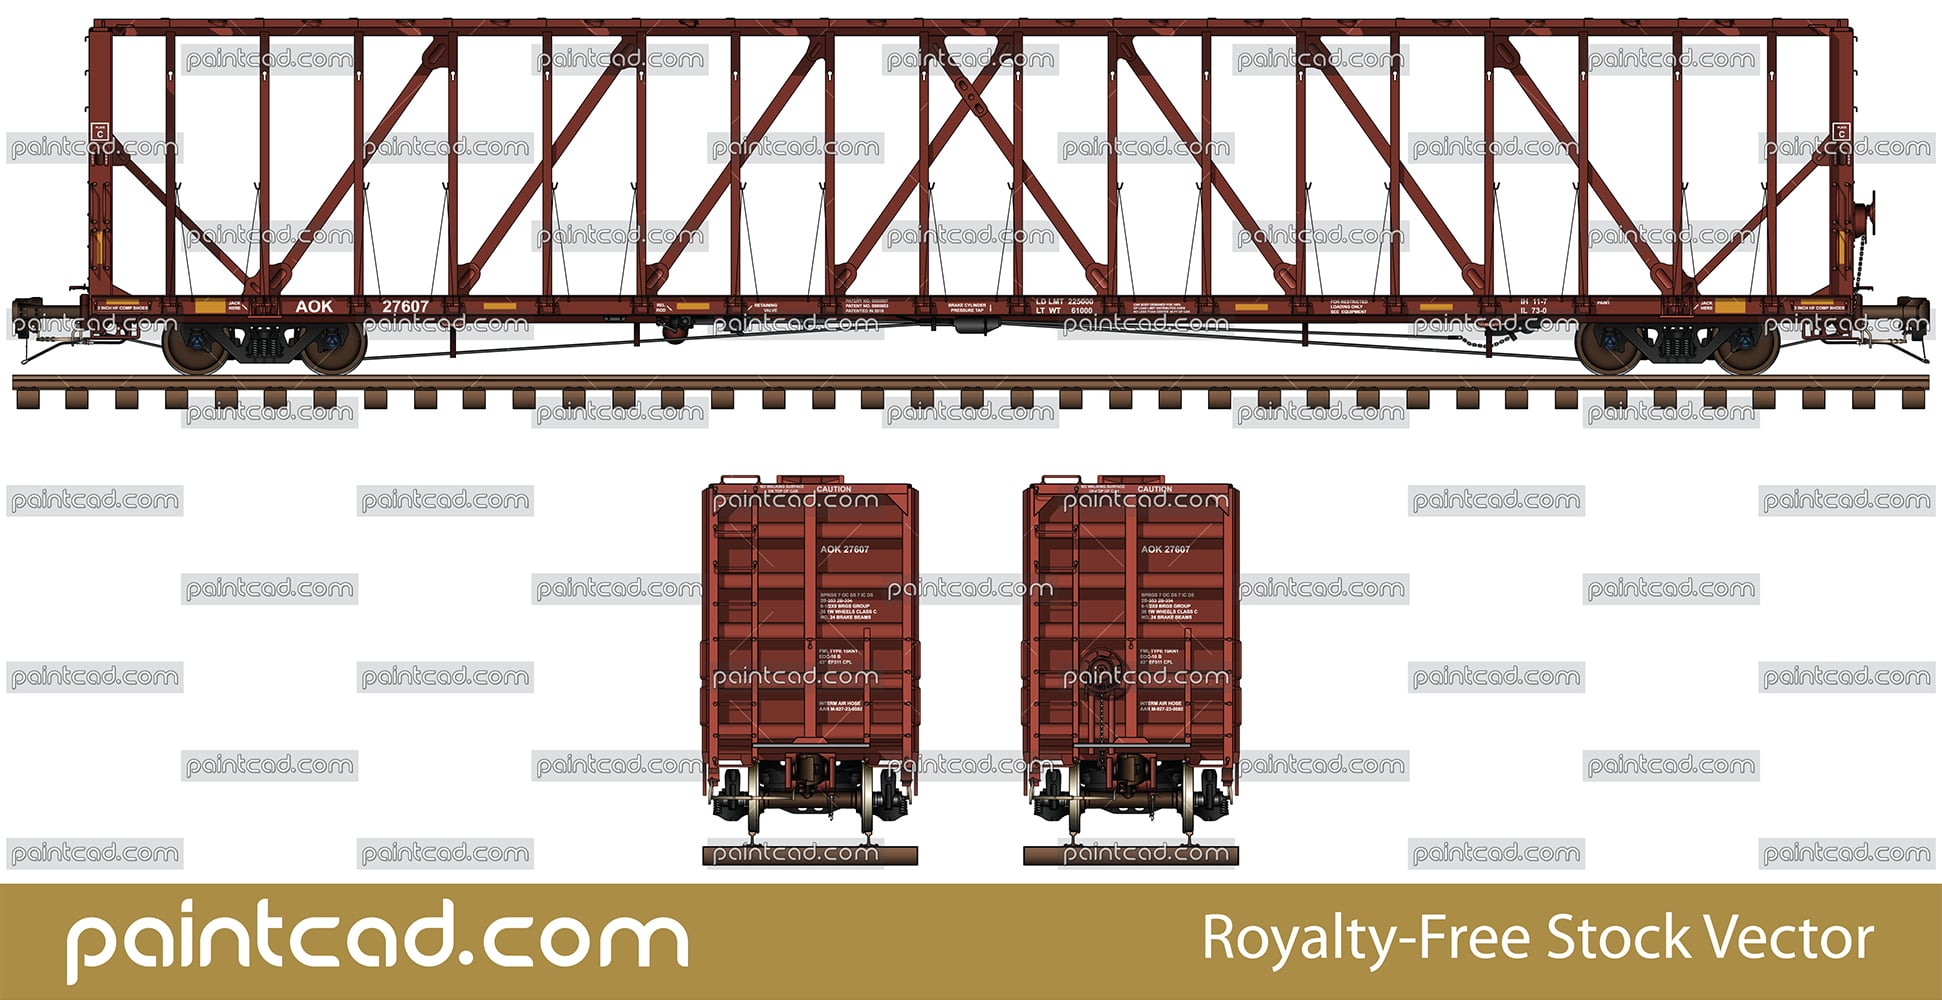 Riserless deck center partition railcar in red livery of AOK - vector illustration